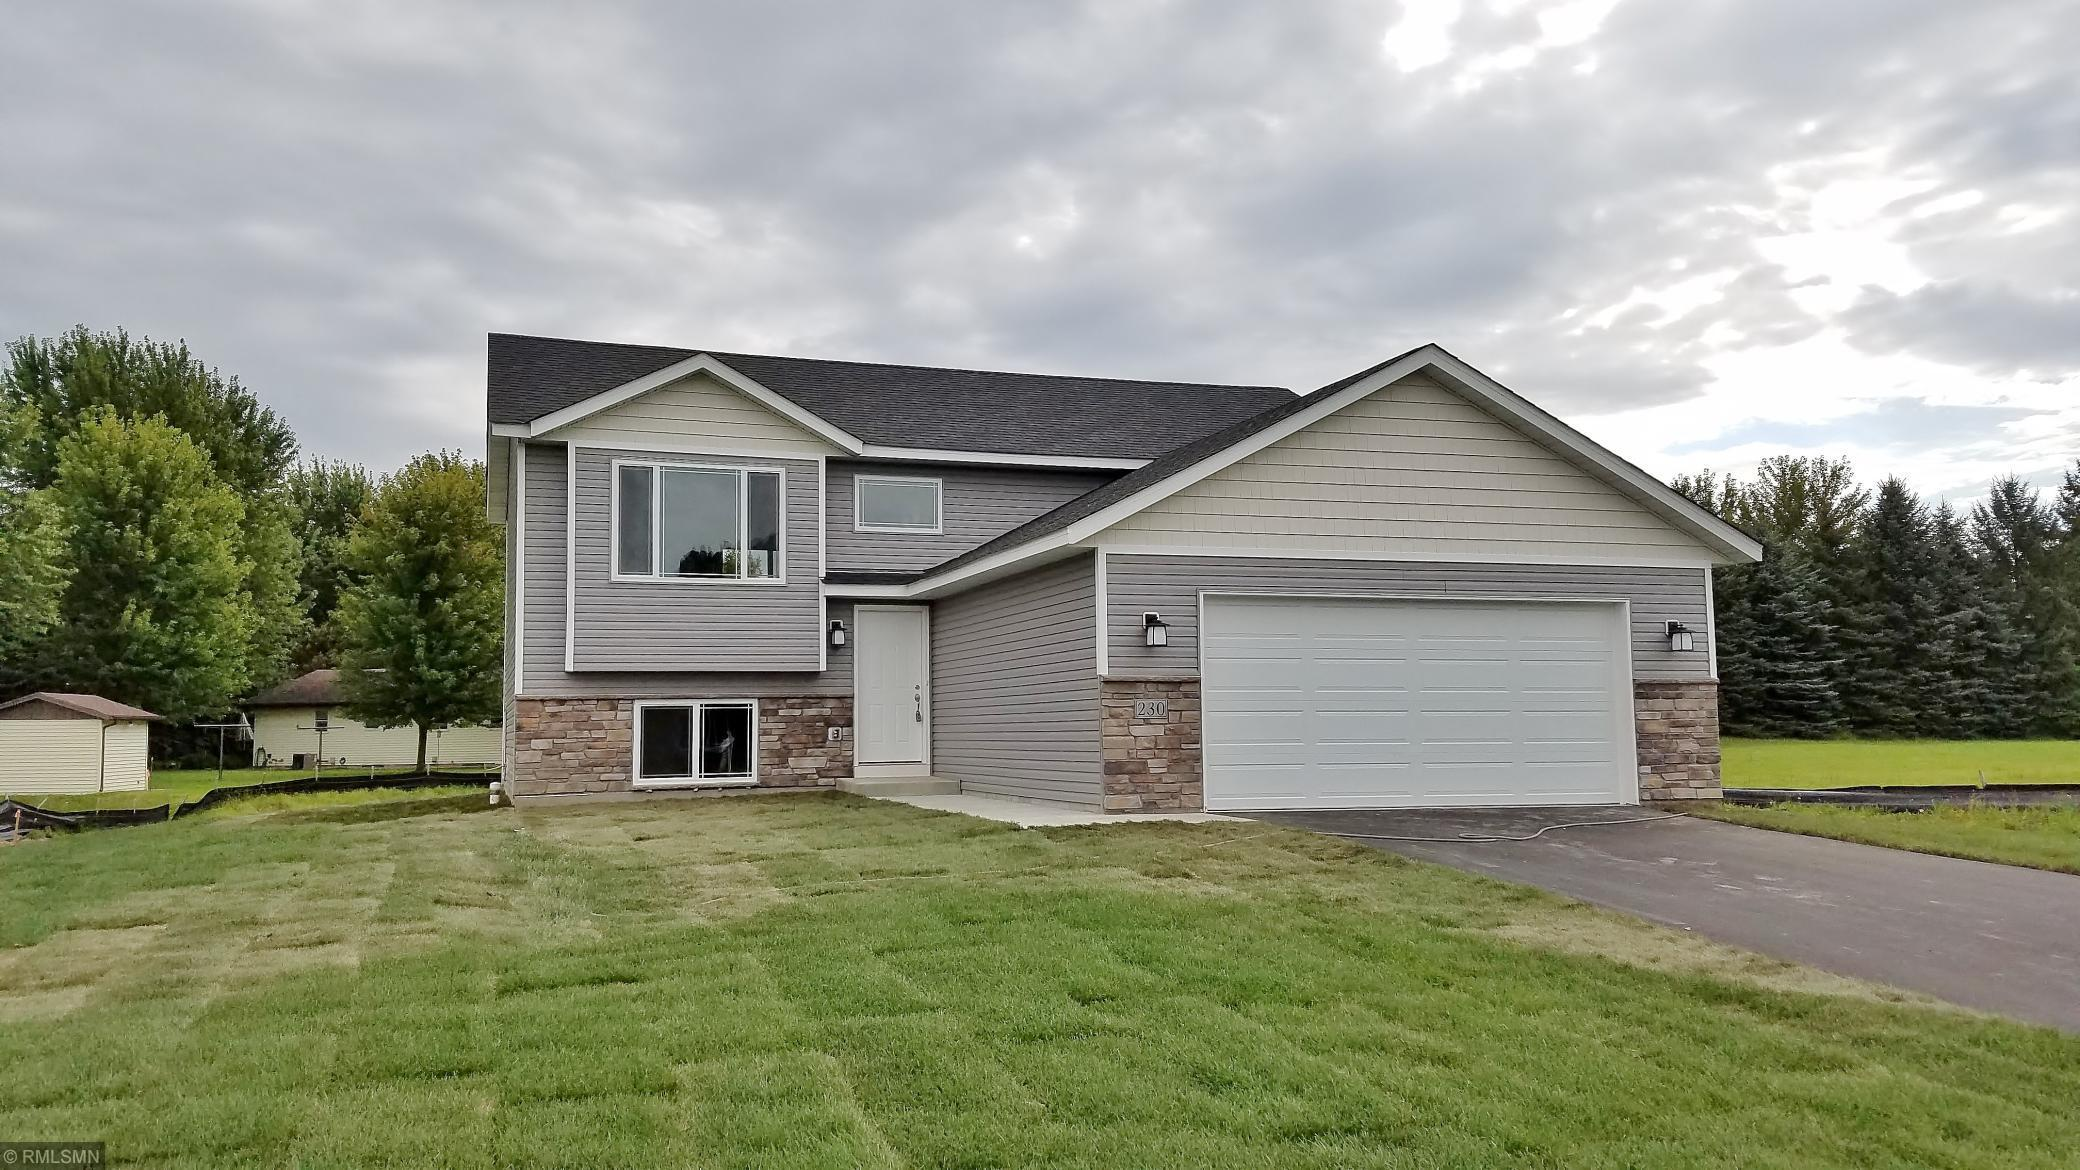 xxx12 Filkins Property Photo - Prescott, WI real estate listing